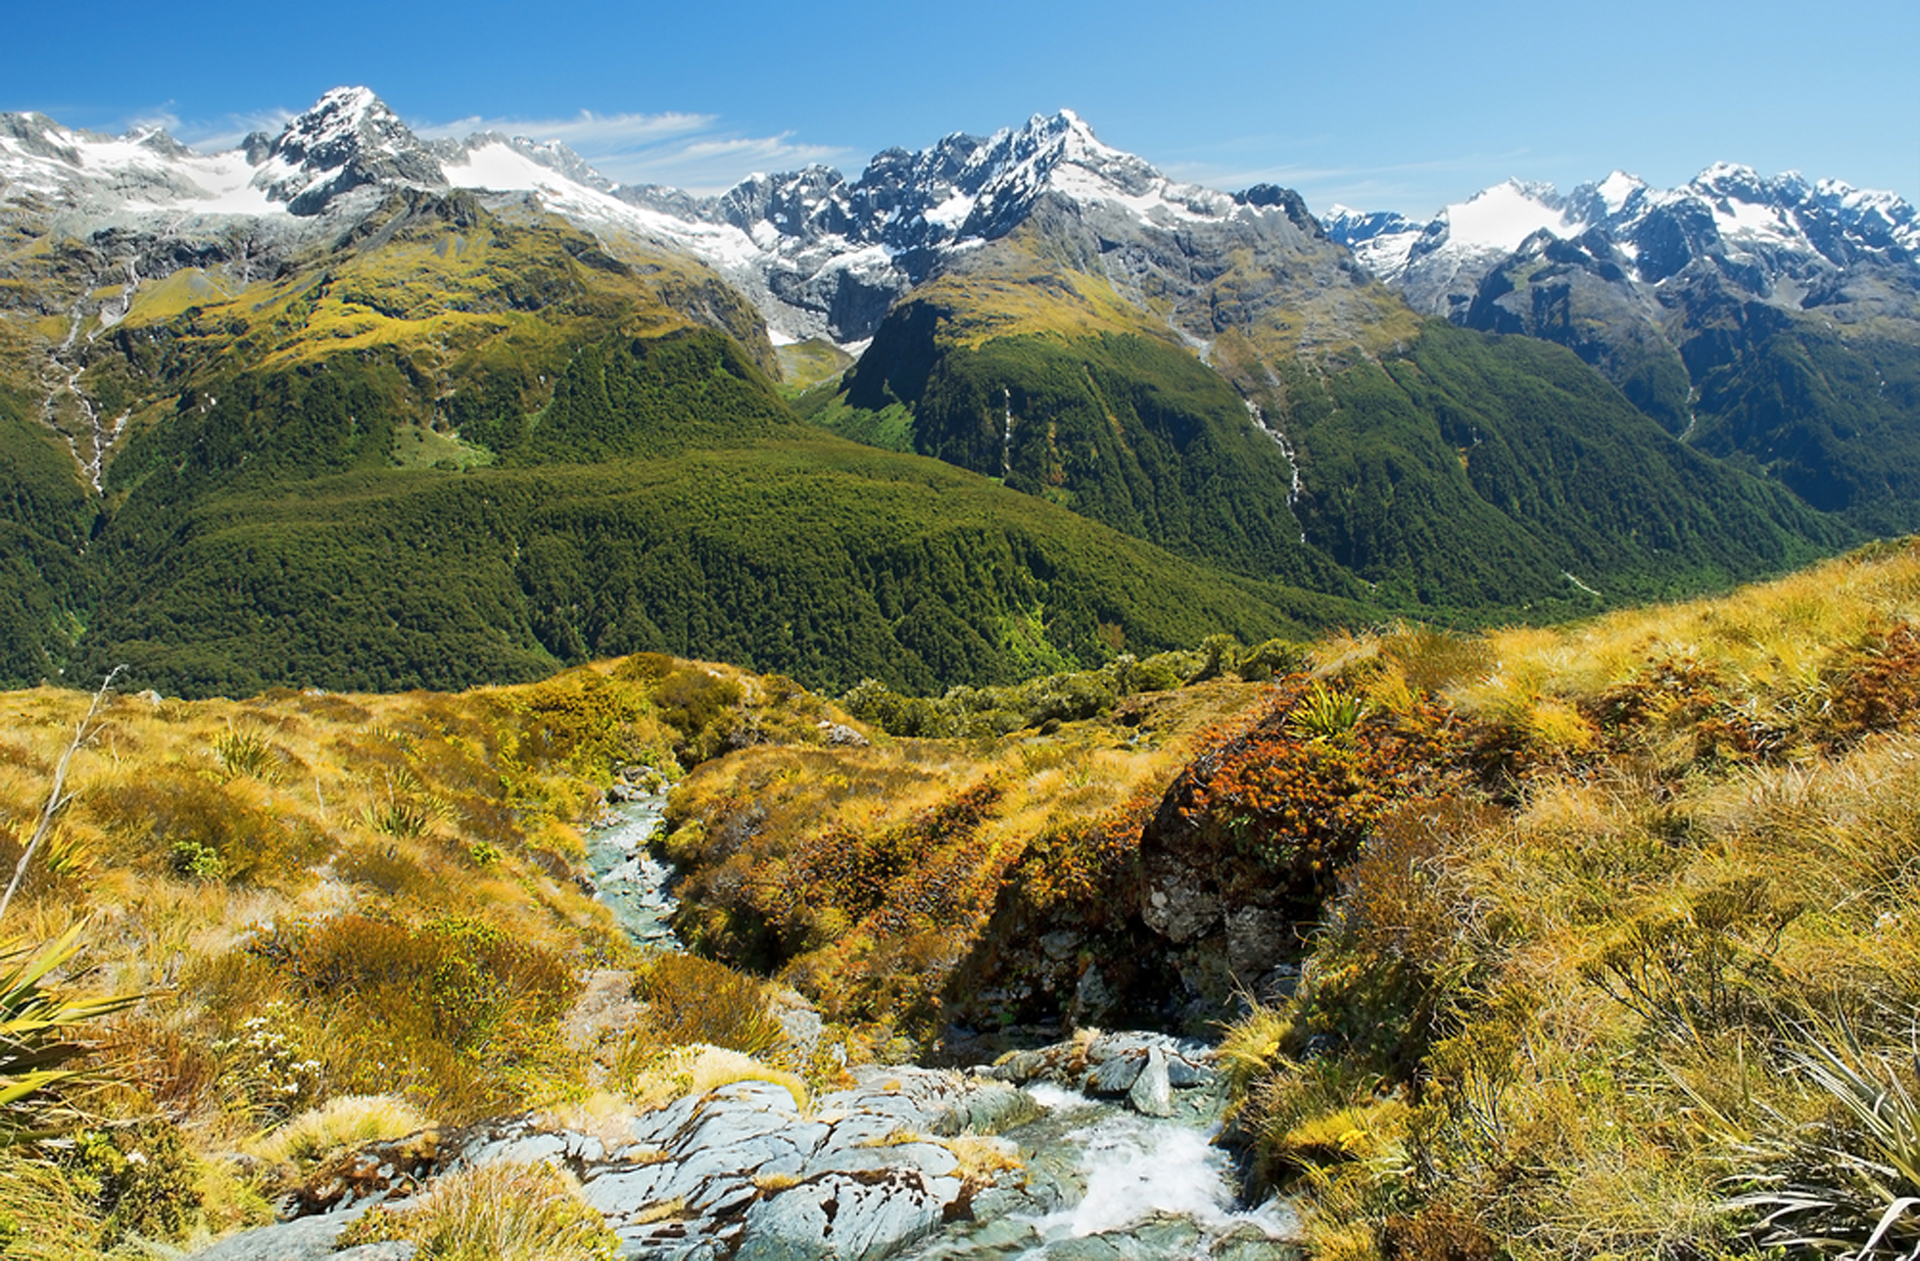 Discovering the fjords of new zealand on the milford track for The milford